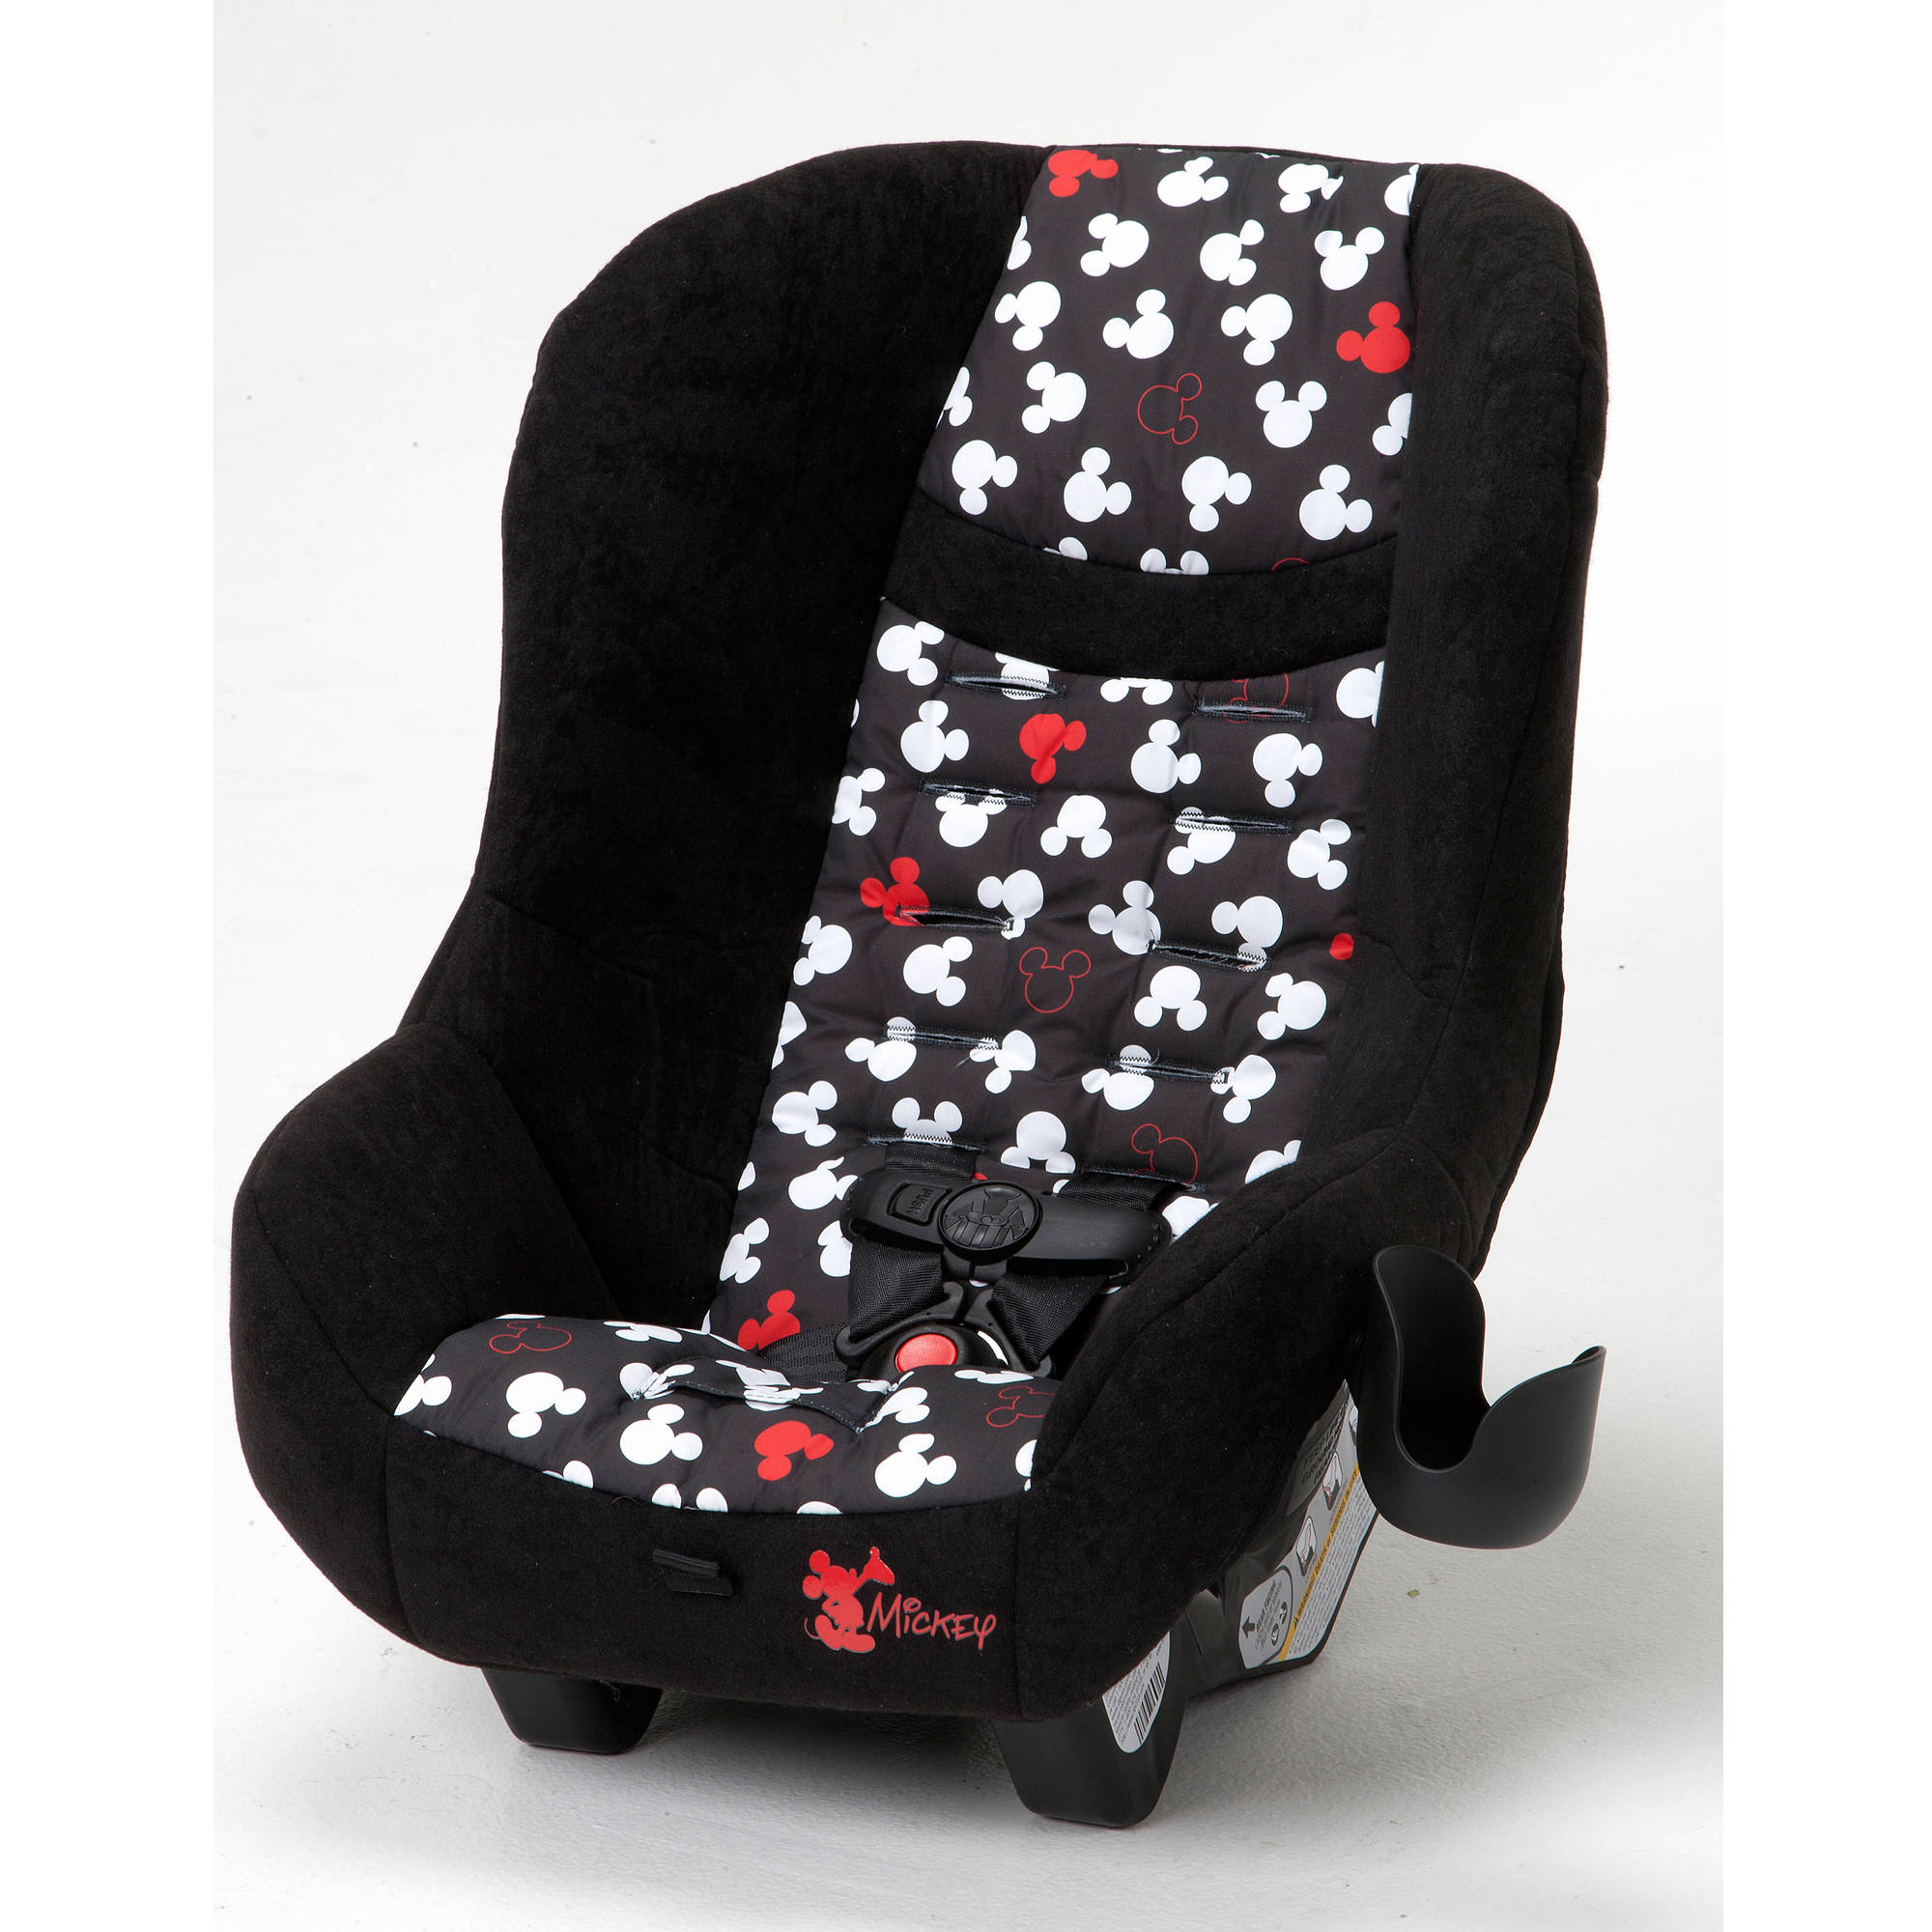 Cosco Scenera NEXT Convertible Car Seat, Choose your Character